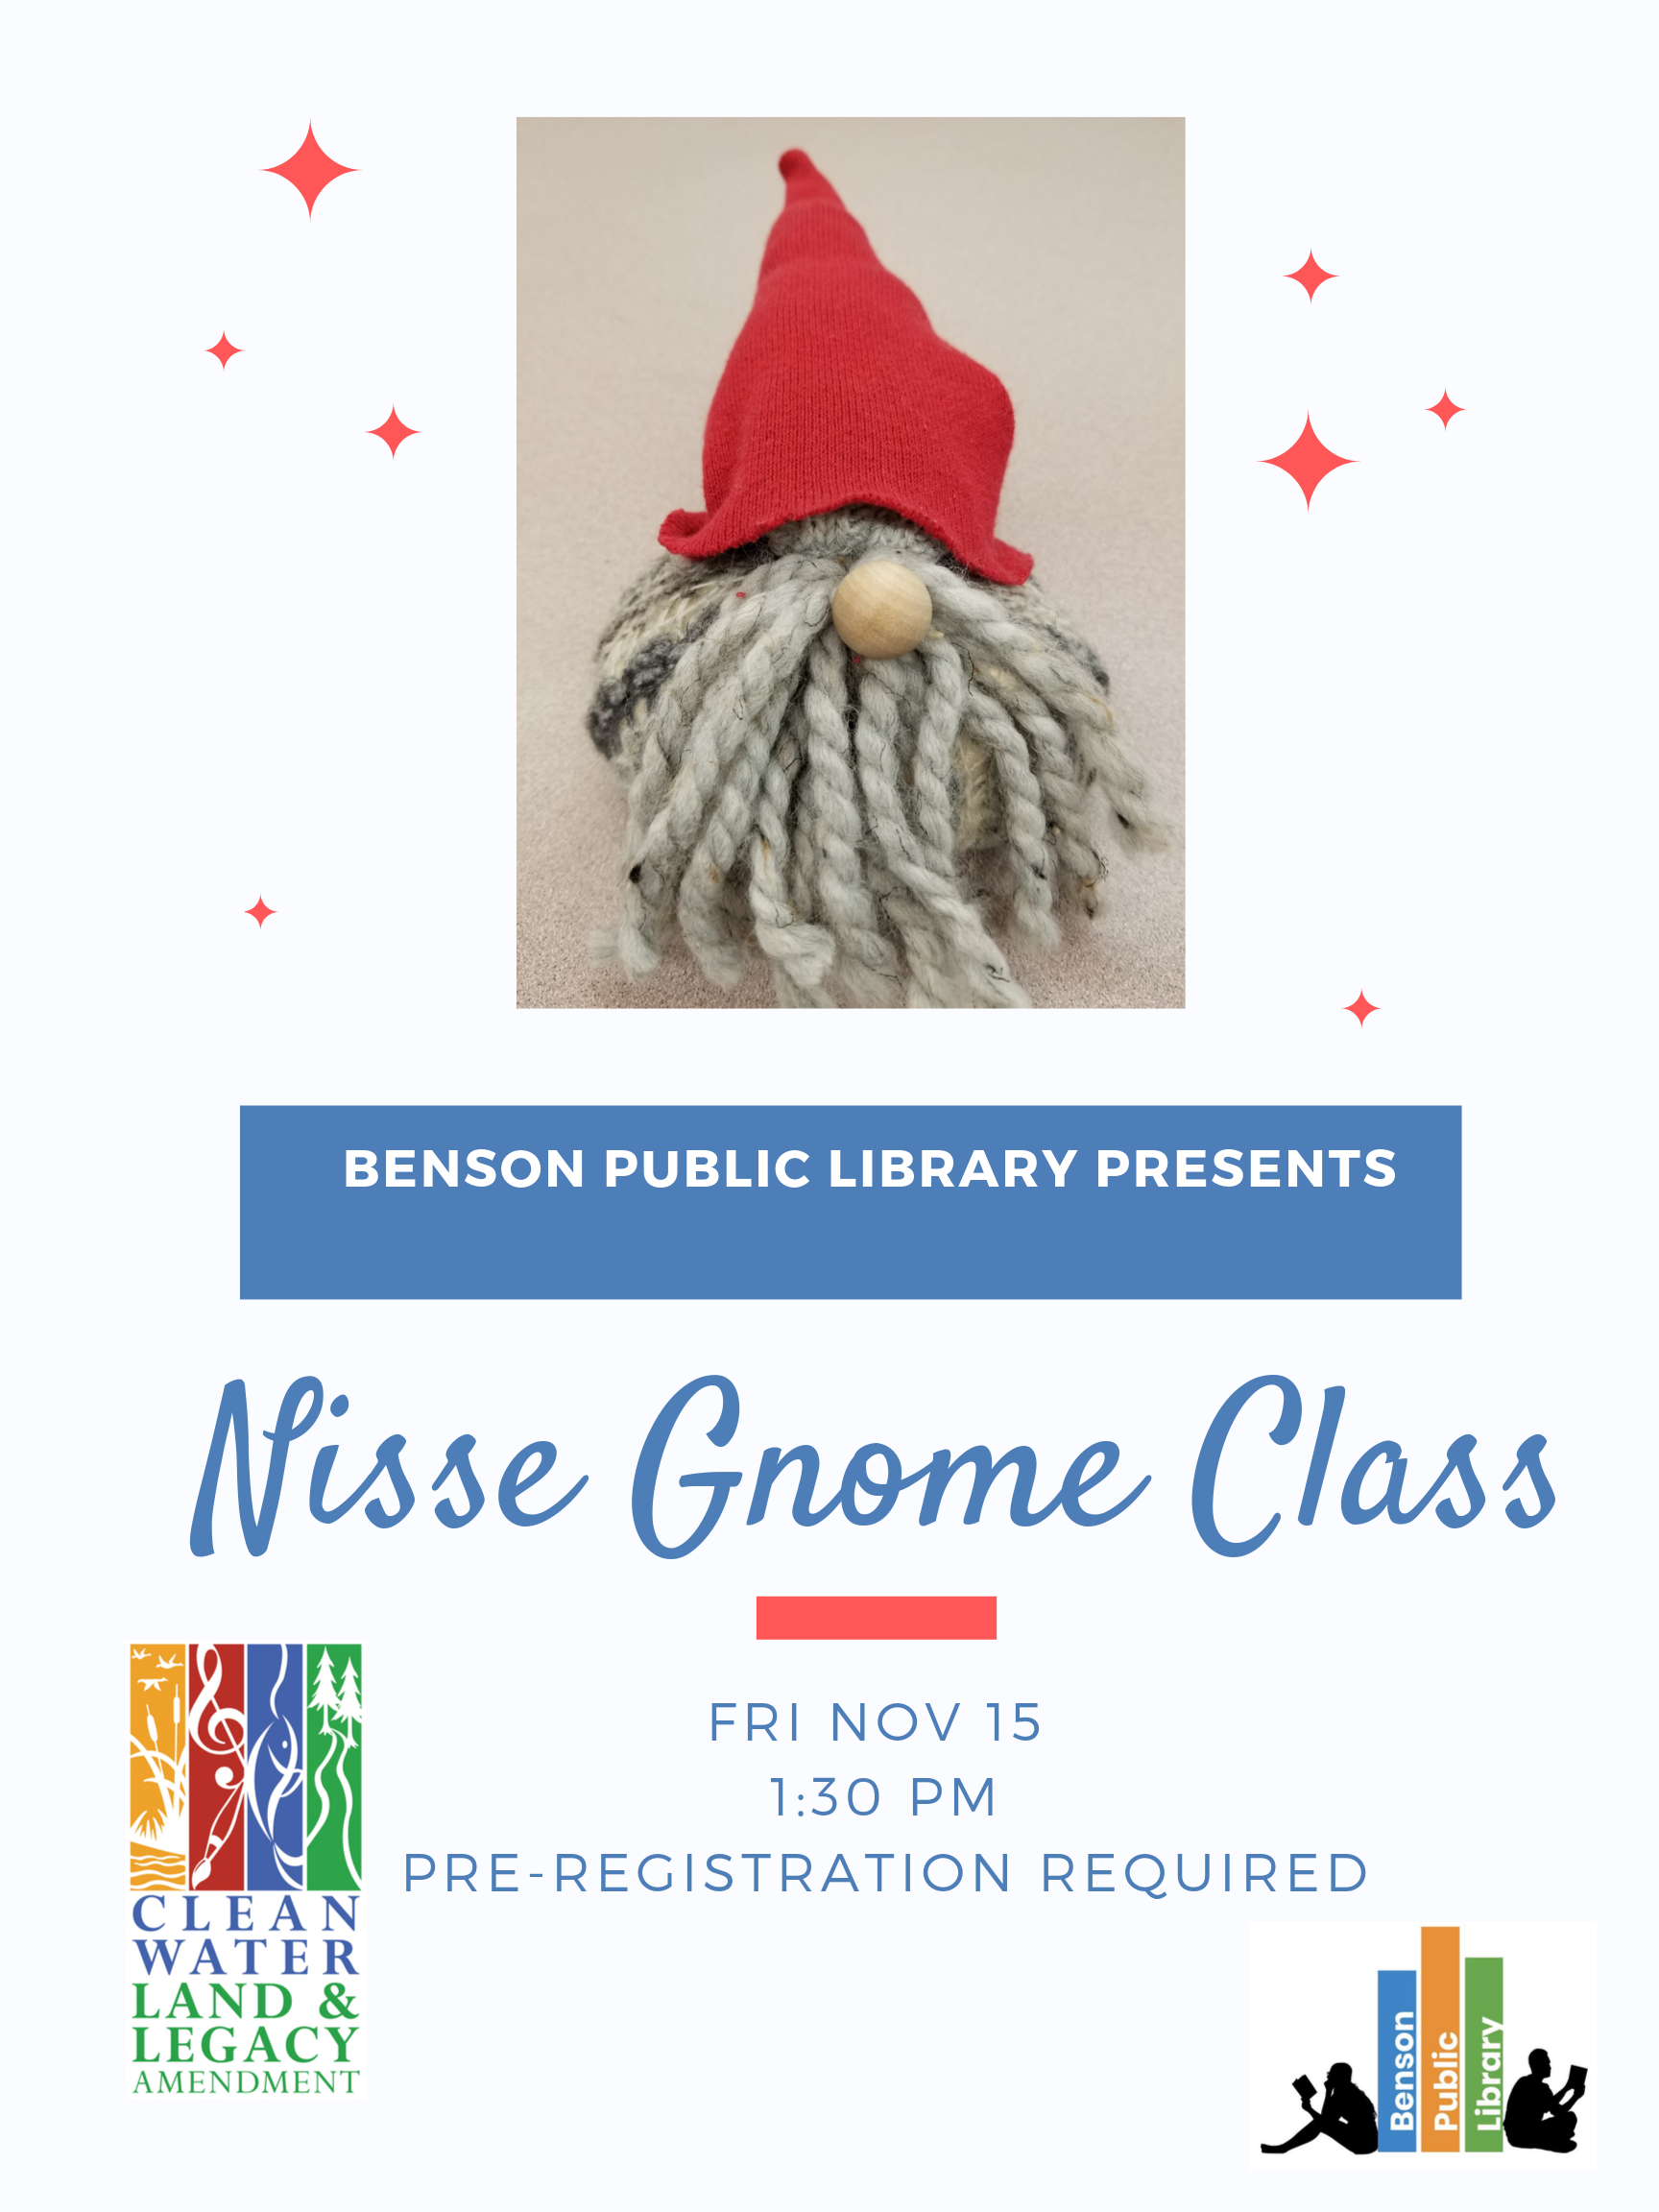 We will be offering a class to make the traditional Scandinavian Nisse Gnome on Friday, November 15 at 1:30 pm. Pre-registration is required.